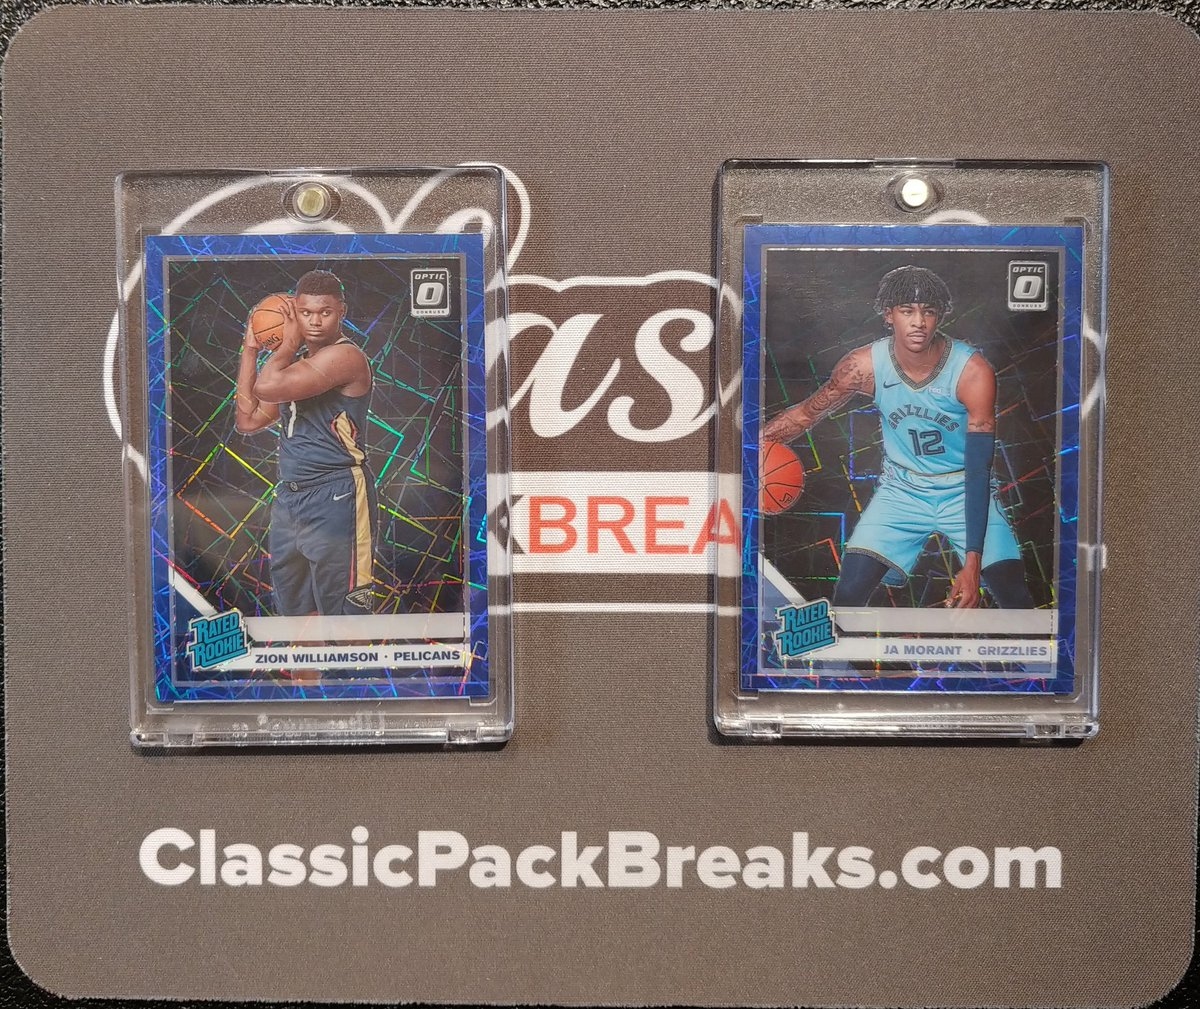 🏀The #FridayNighLights were bright at https://t.co/a2wE8d9bxN last night!! One box, two sweet cards!! Subscribe and join us at https://t.co/nDNw1BcoLF!! #whodoyoucollect #TheHobby #baseballcards #basketballcards @Zionwilliamson @JaMorant #onlinecardshop #classicpackbreaks https://t.co/iL2dZxNXap